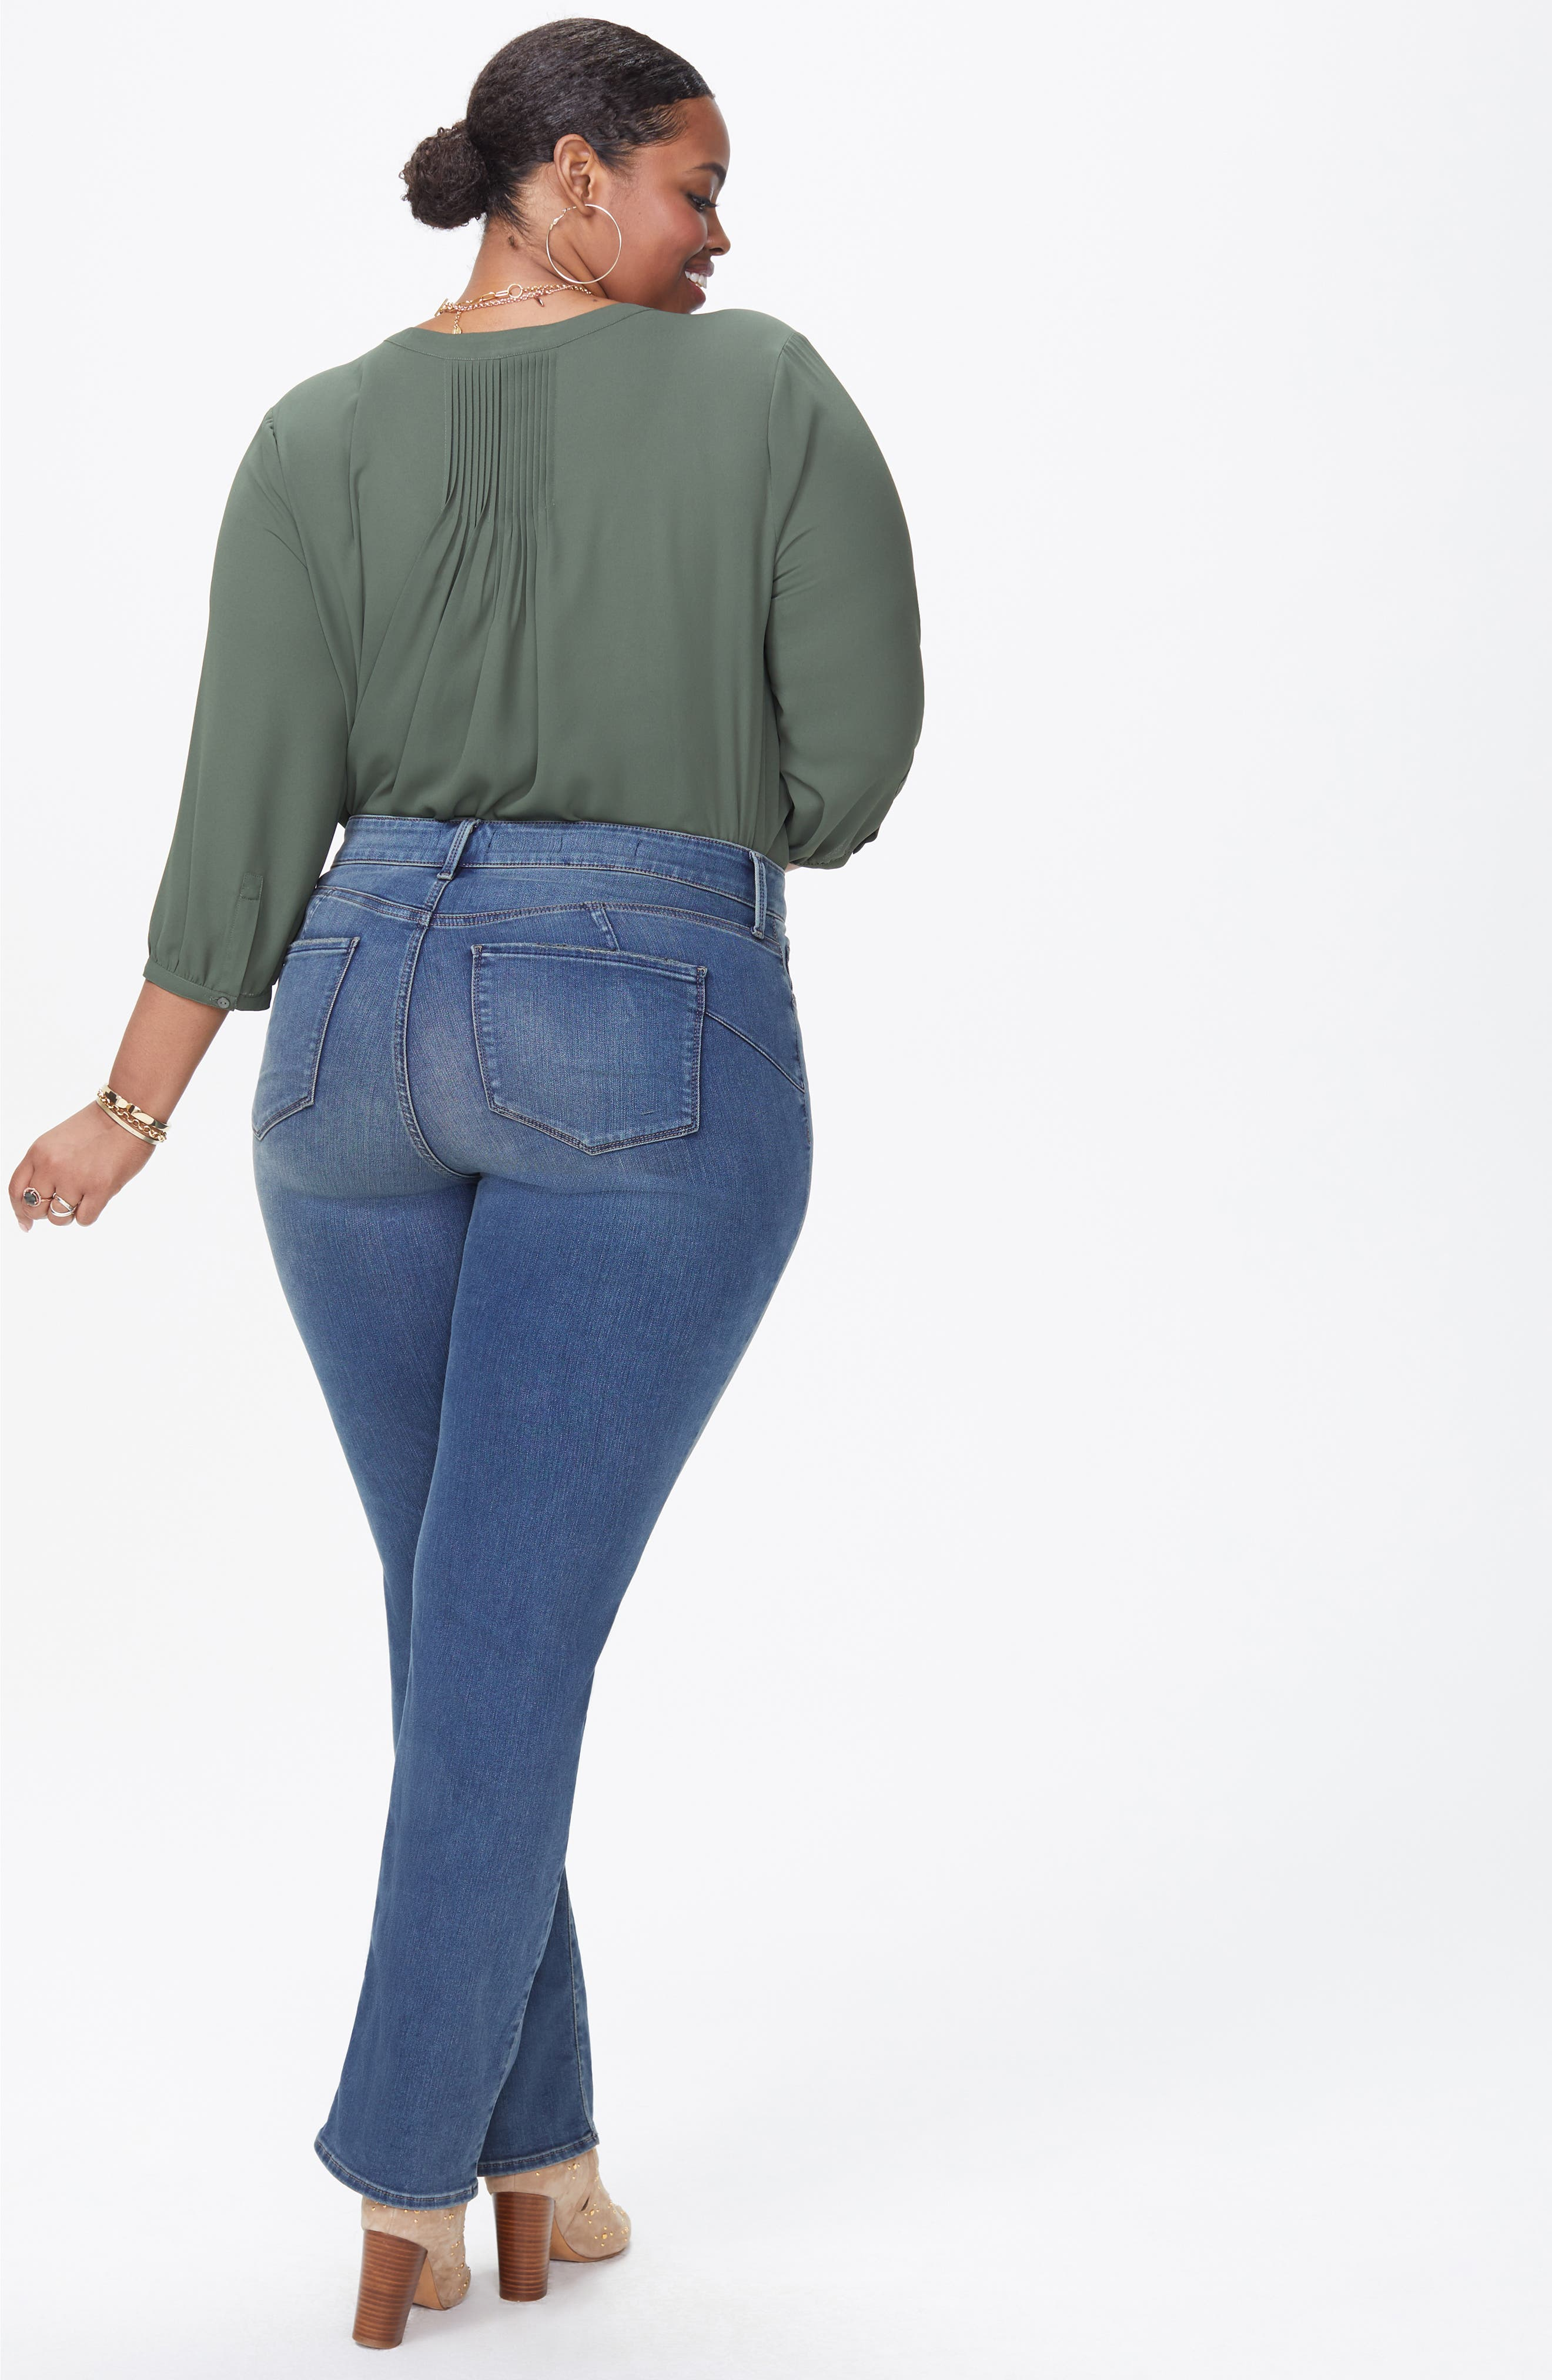 Marilyn Uplift Straight Leg Jeans,                             Alternate thumbnail 4, color,                             FERRIS